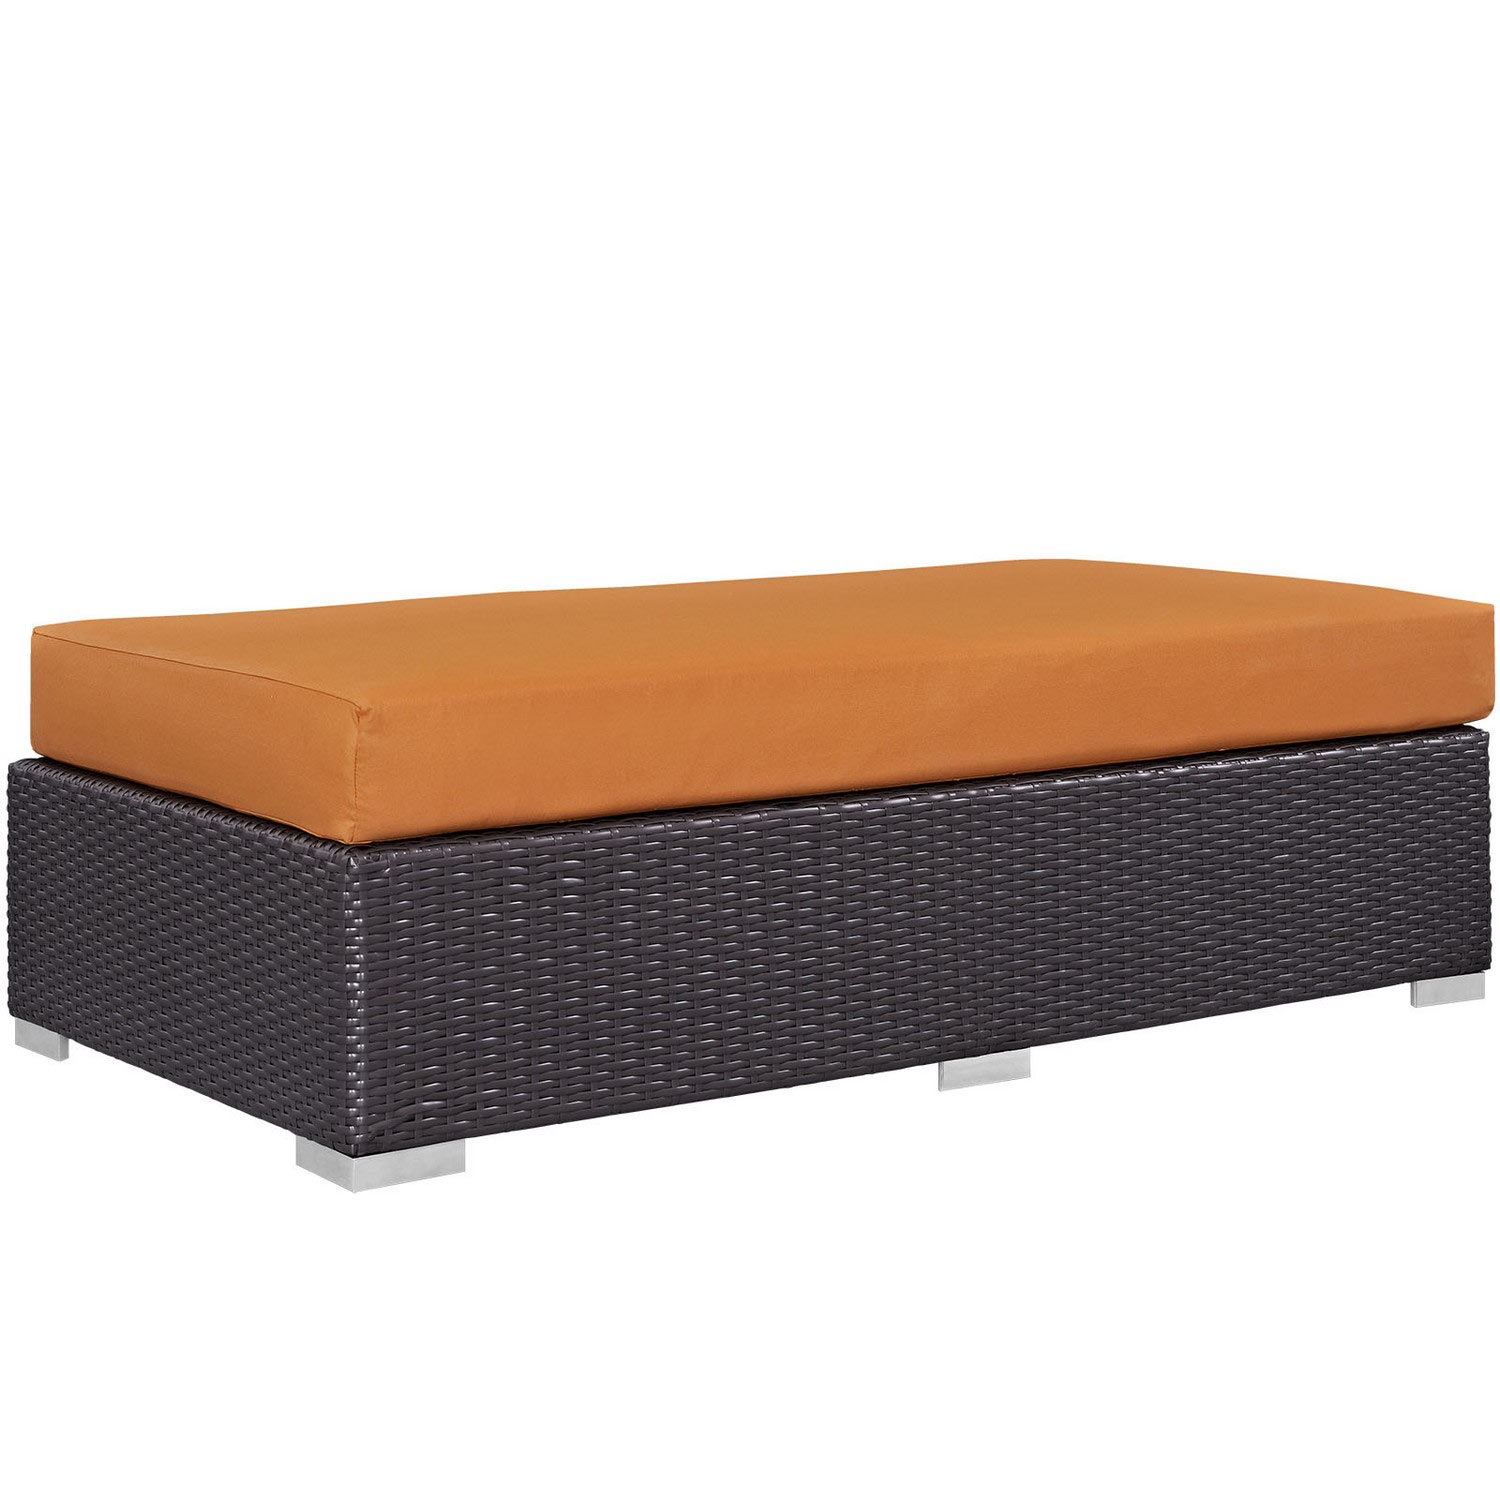 Modway Convene Outdoor Patio Fabric Rectangle Ottoman - Espresso Orange